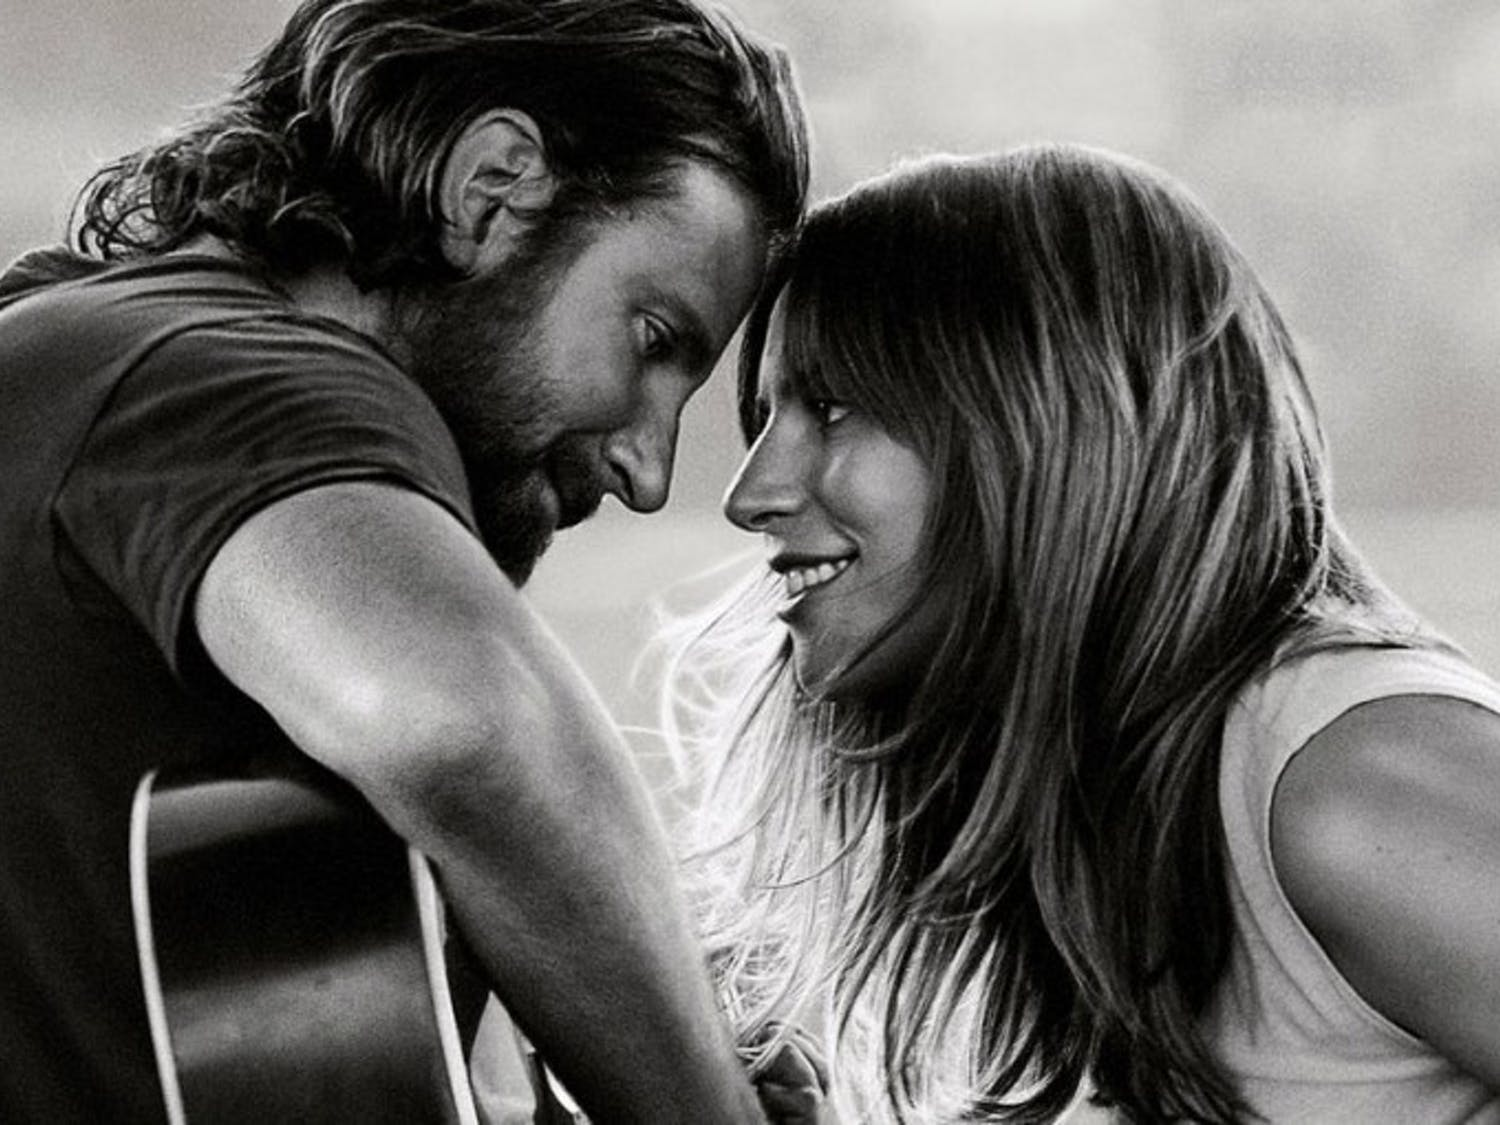 In his directorial debut,Bradley Cooper's talent for storytellingisjust as strong as his acting abilities.